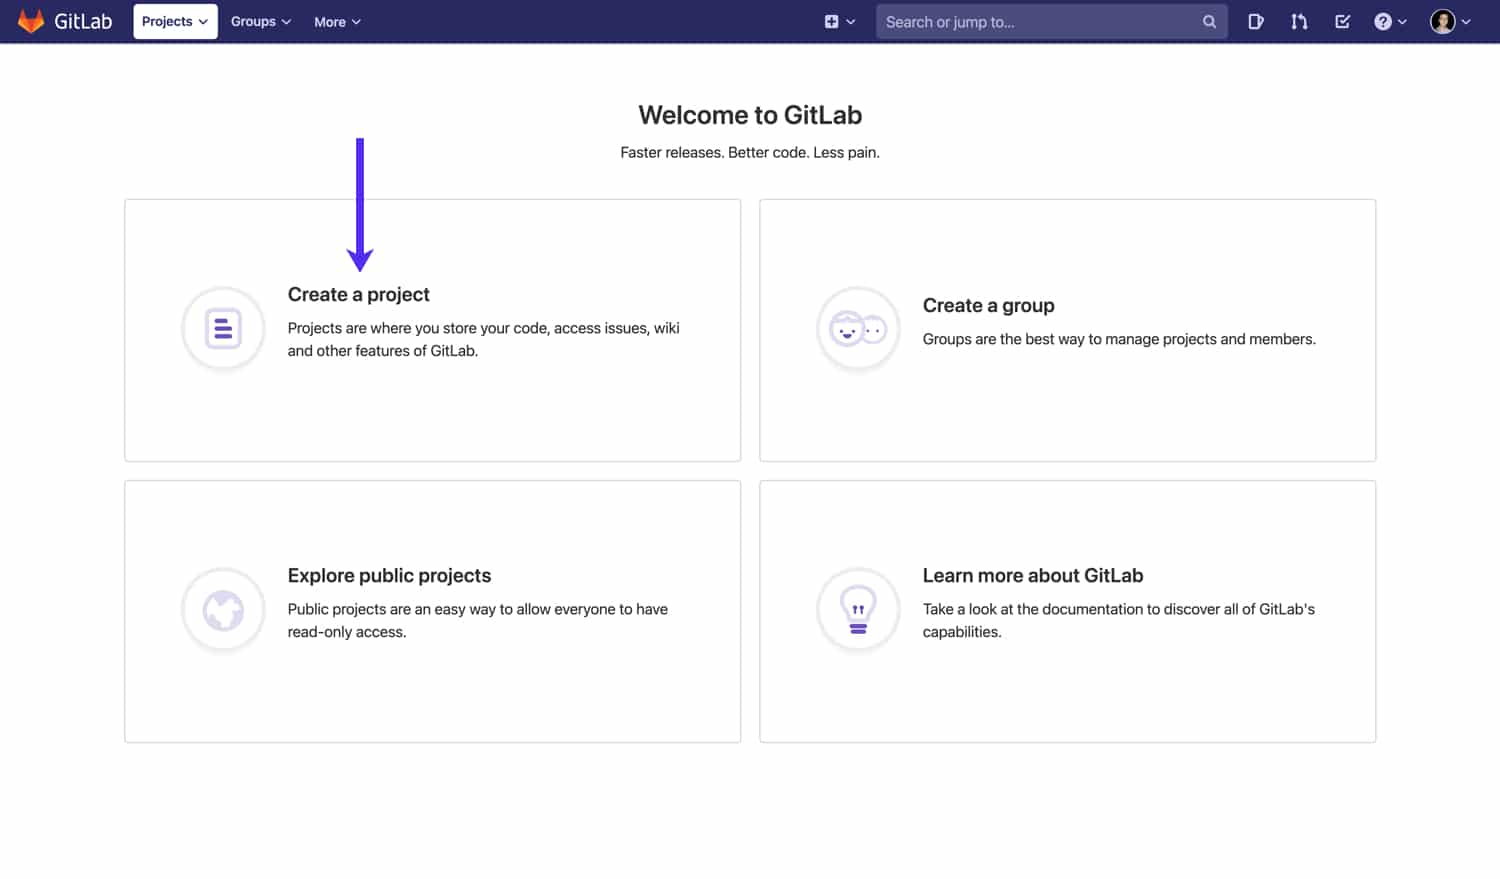 Create a project in GitLab.